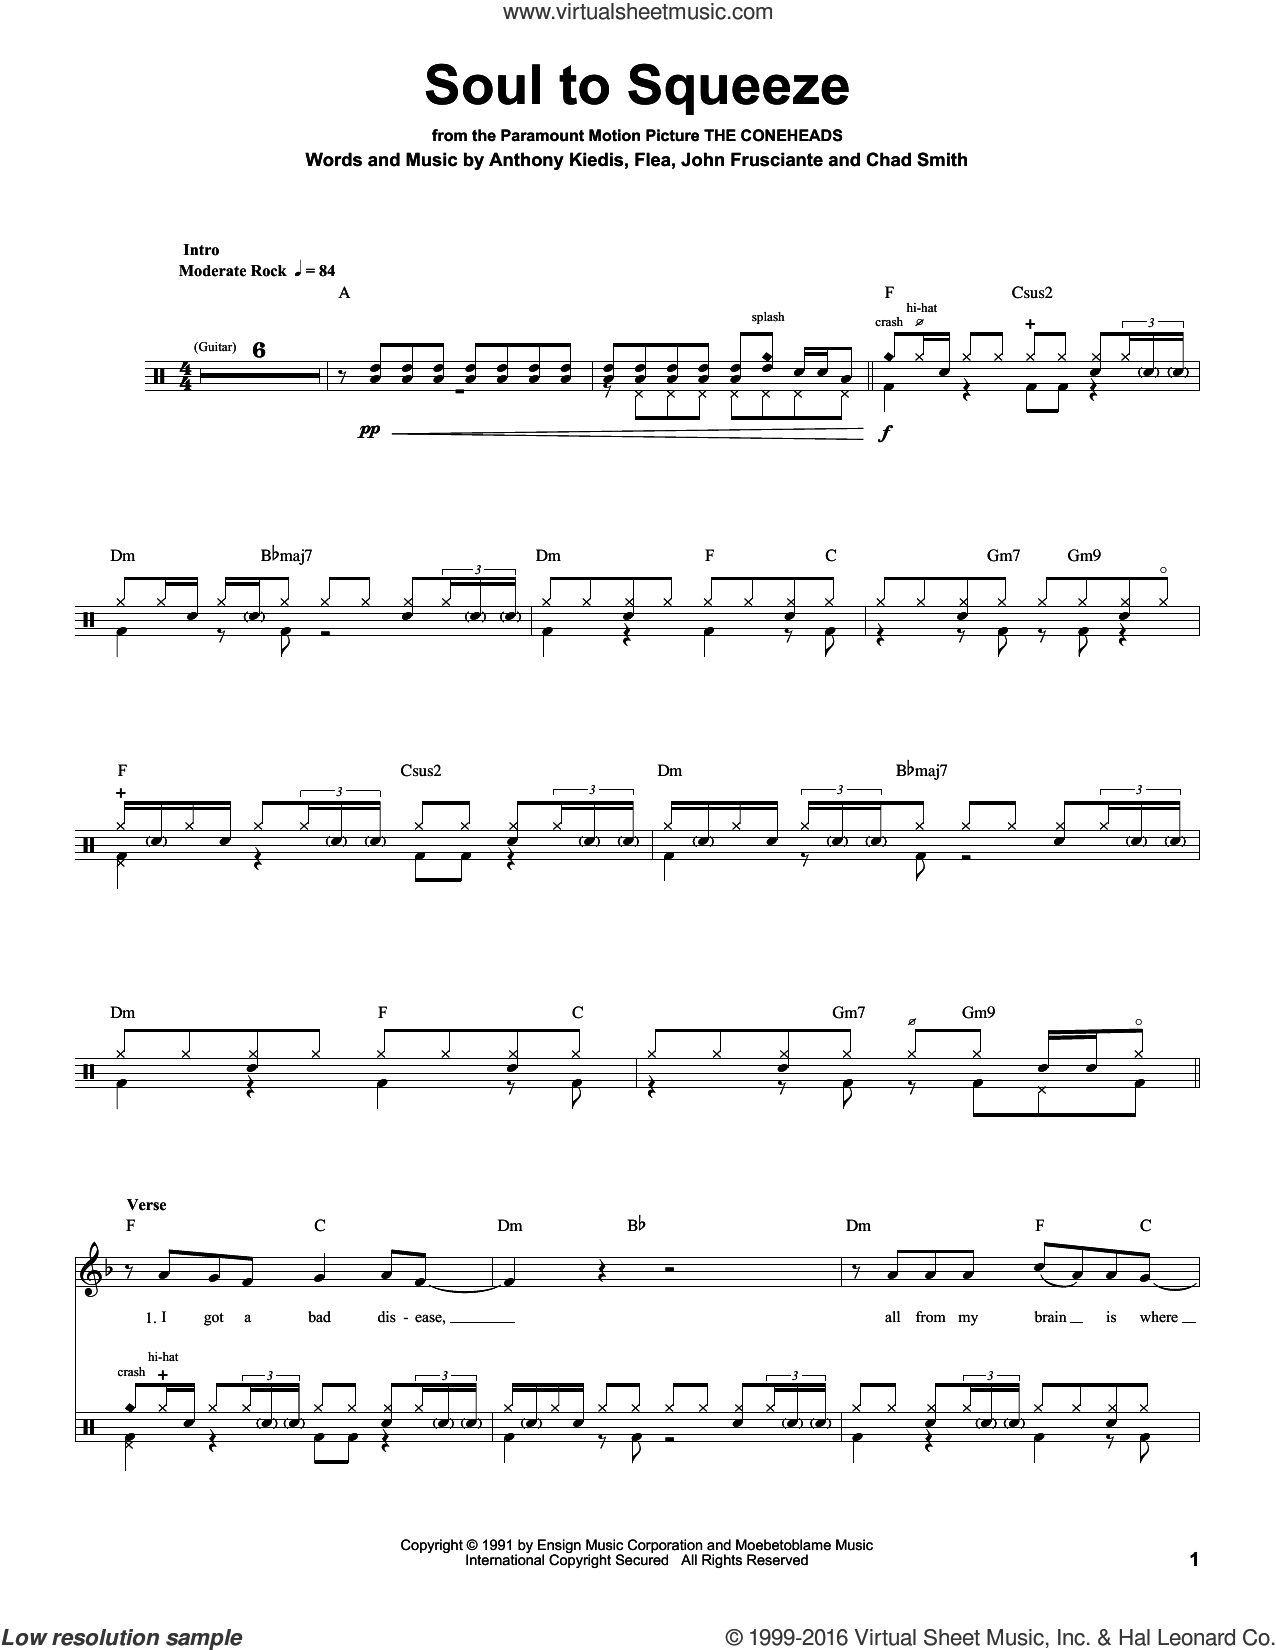 Soul To Squeeze sheet music for drums by Red Hot Chili Peppers. Score Image Preview.